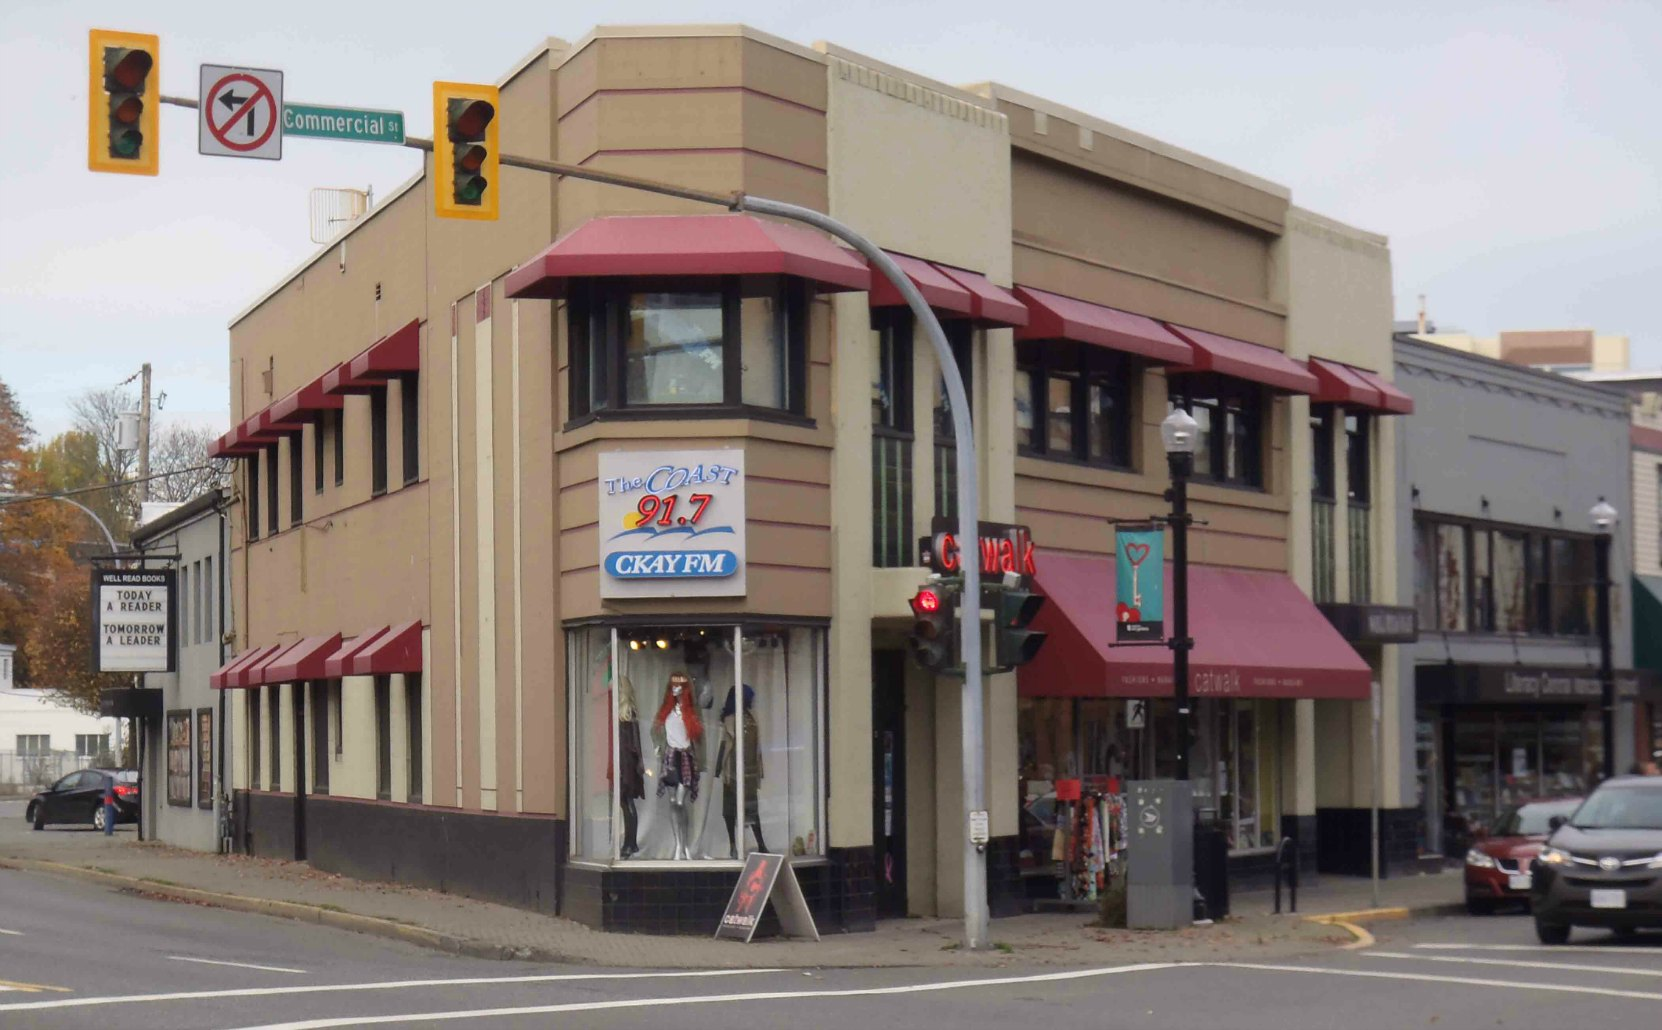 Present day CKAY-FM offices, Commercial Street, Nanaimo, B.C.